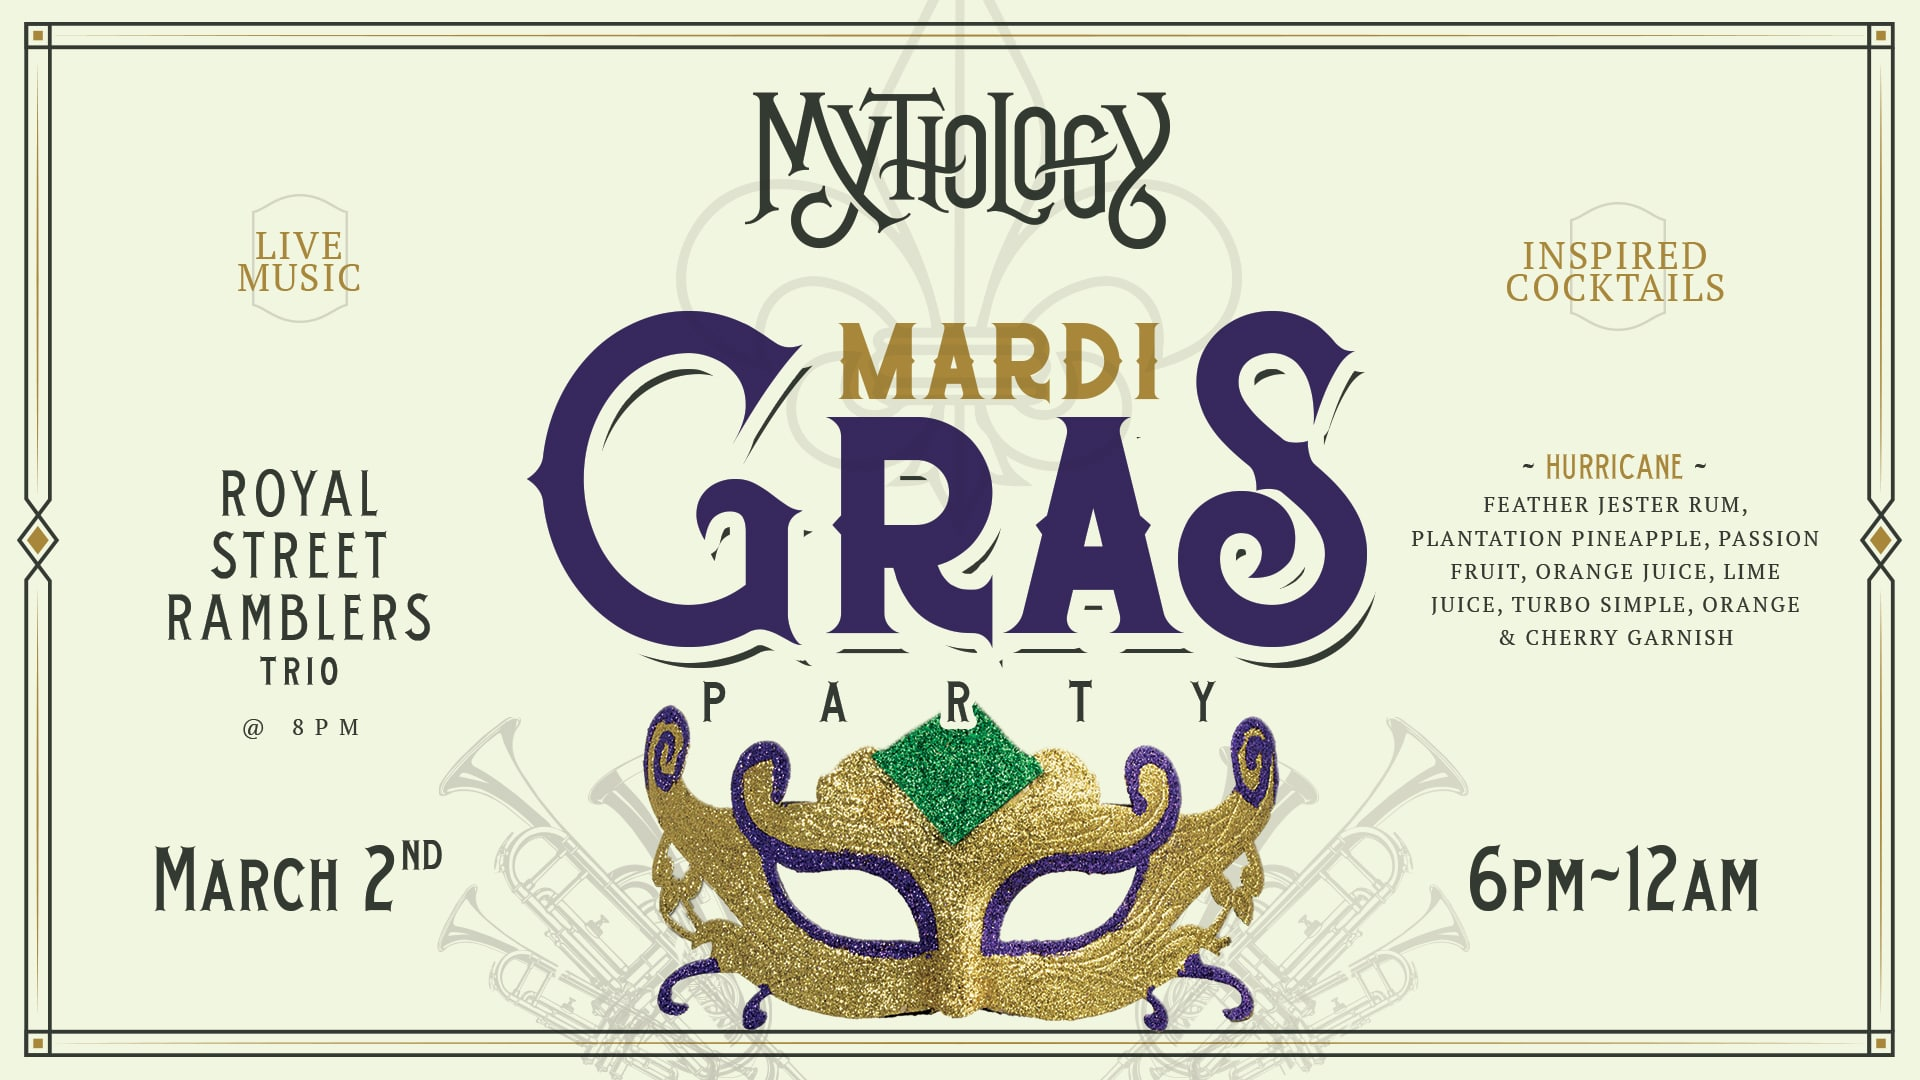 Mardi Gras Mythology Distillery